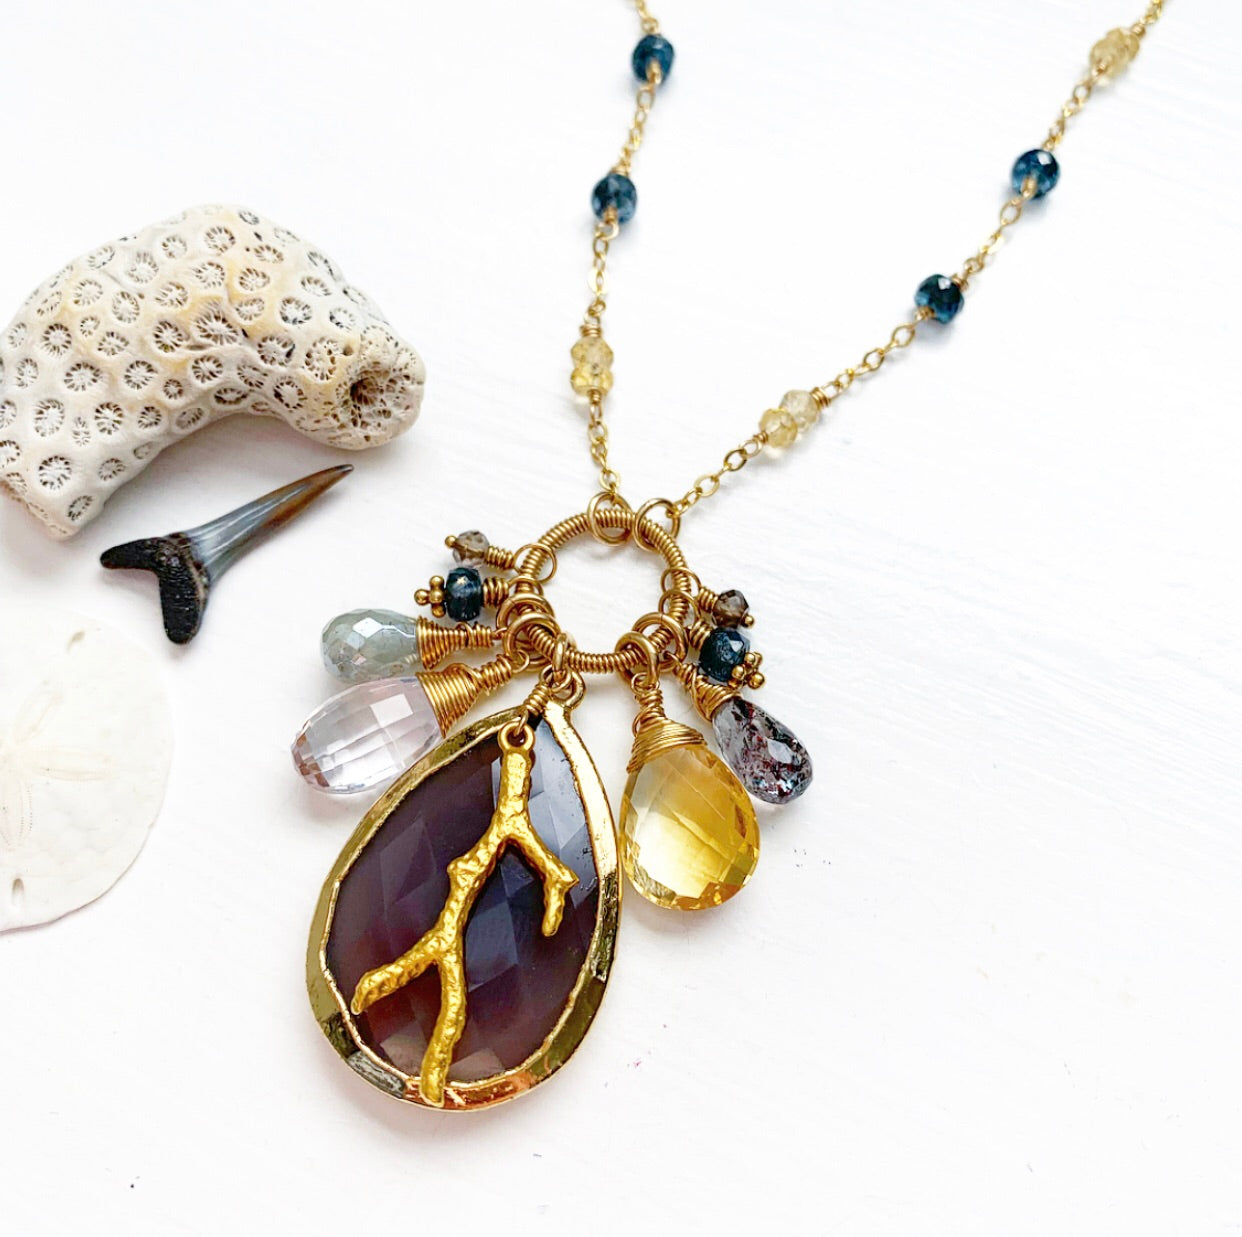 688-One of a Kind Gemstone Drop Necklace